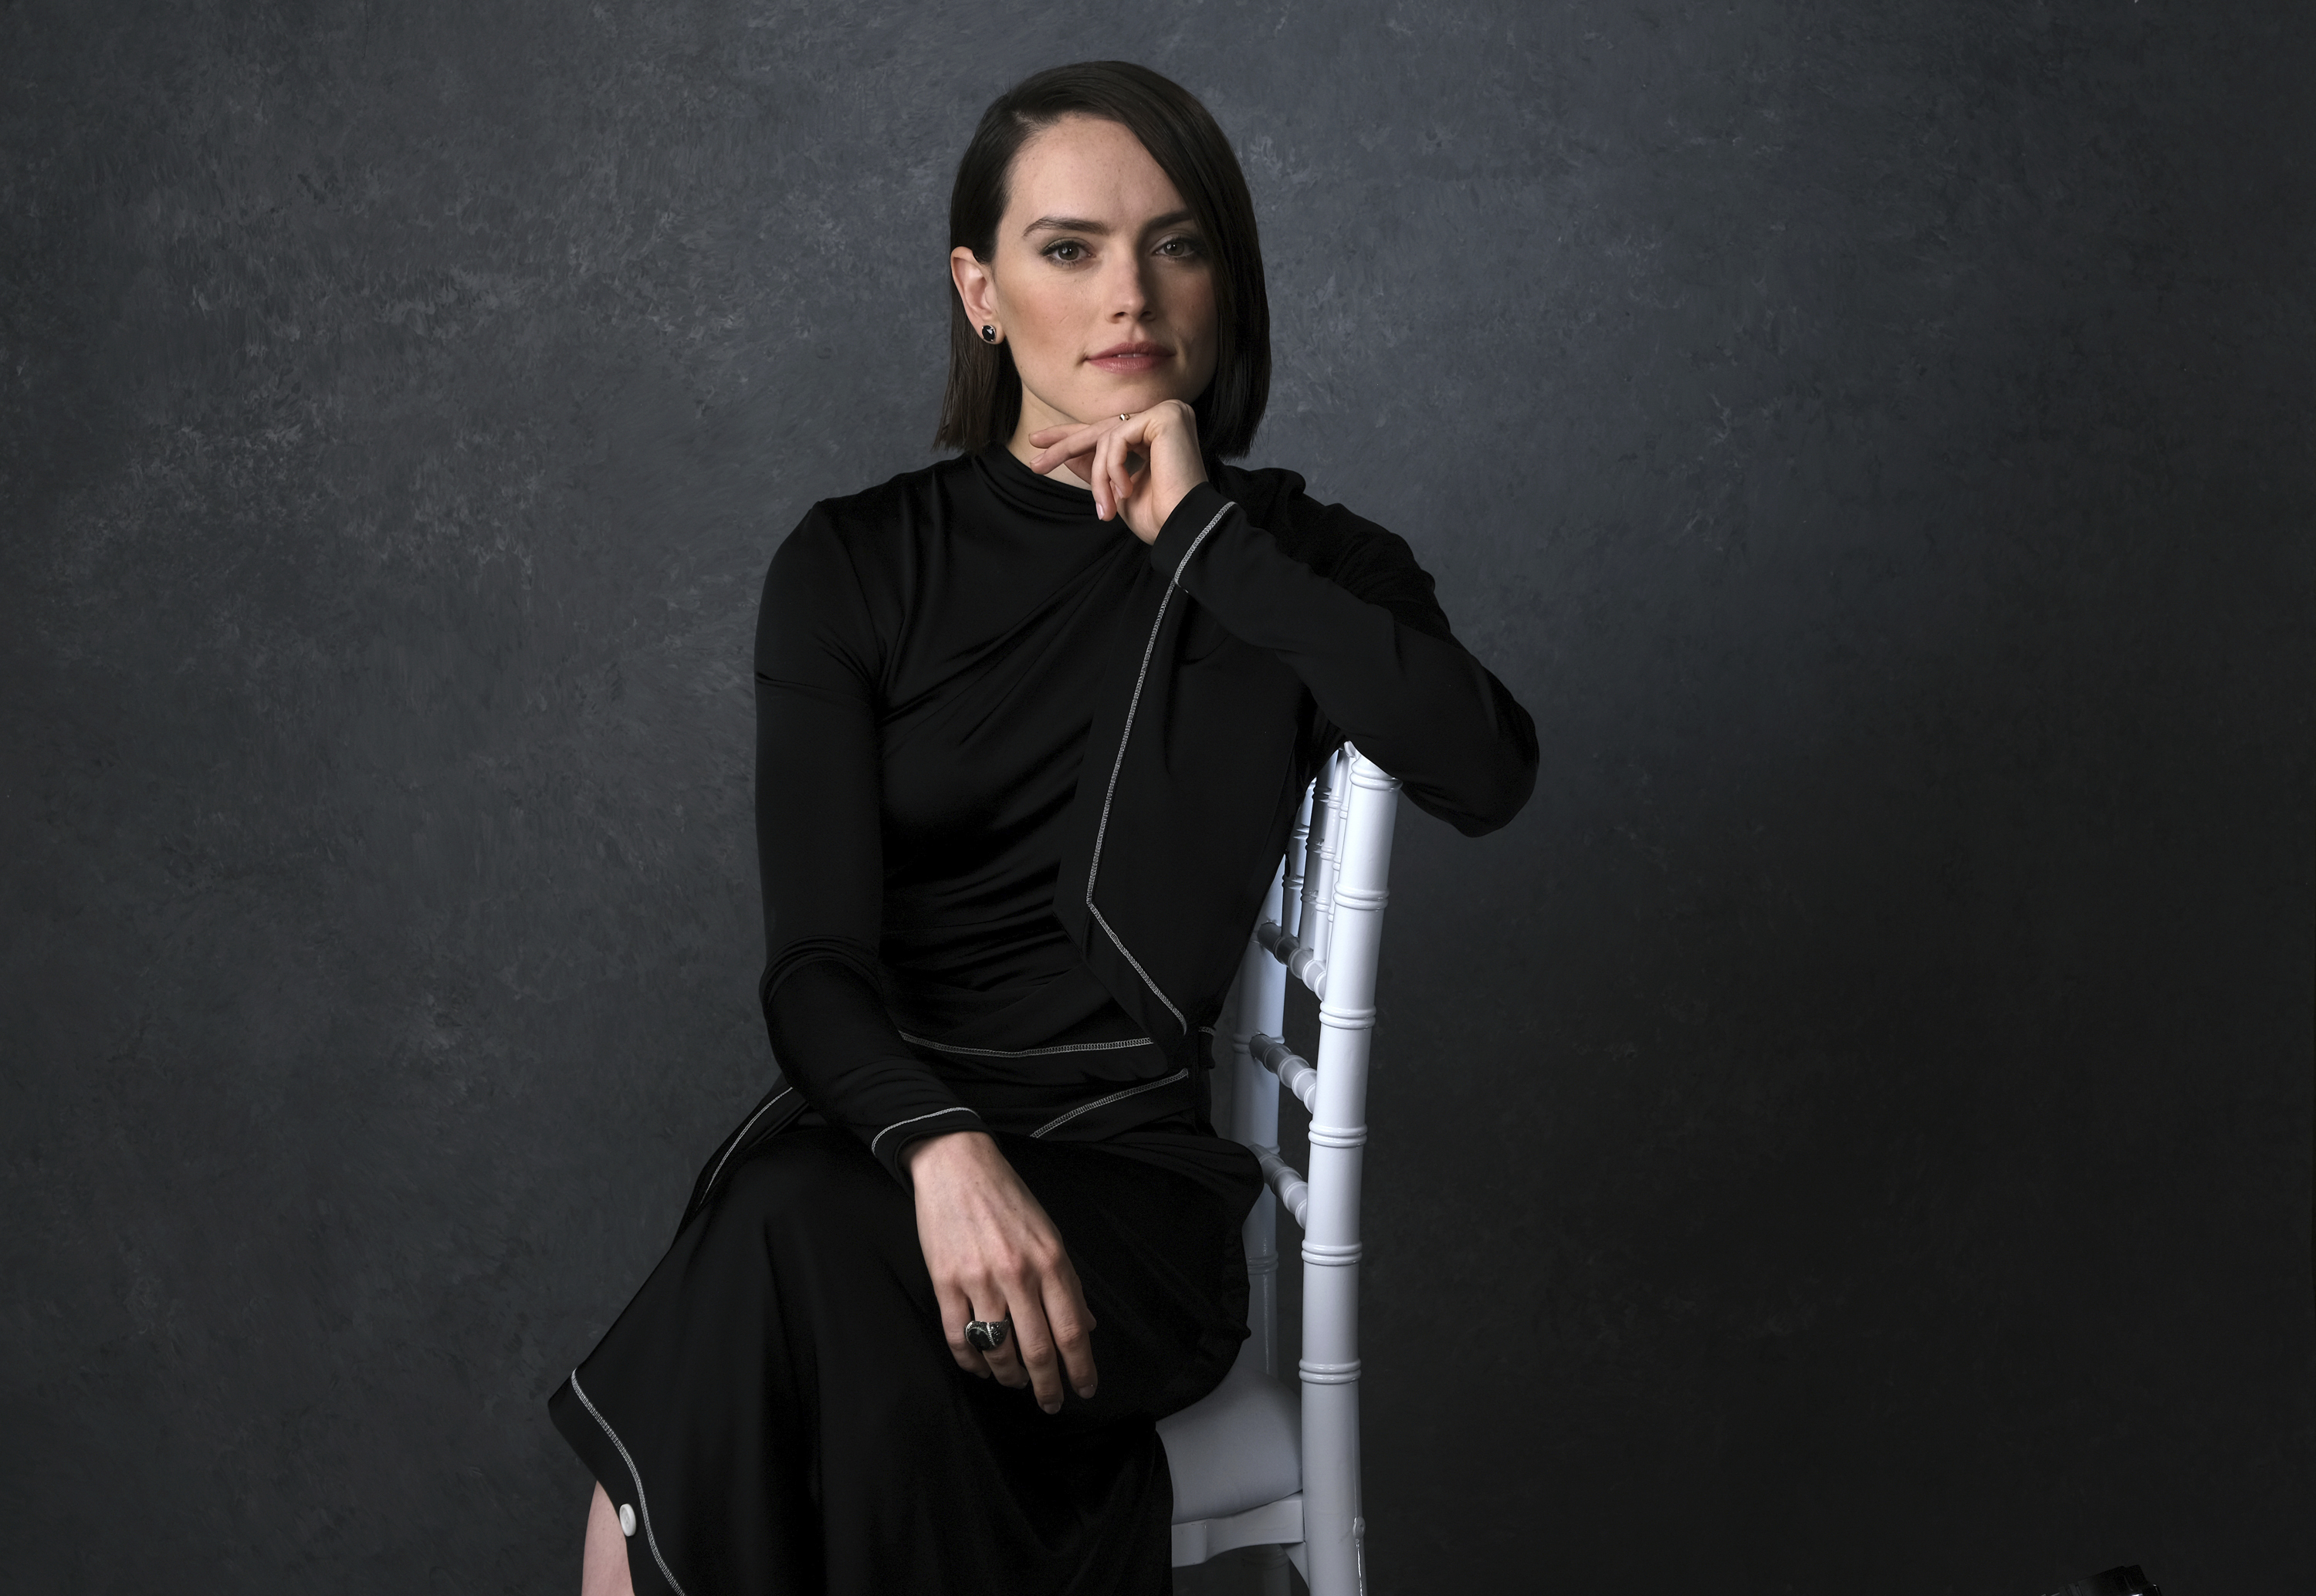 """Daisy Ridley poses for a portrait to promote the film """"Star Wars: The Rise of Skywalker"""" on Tuesday. Dec. 3, 2019, in Pasadena, Calif."""